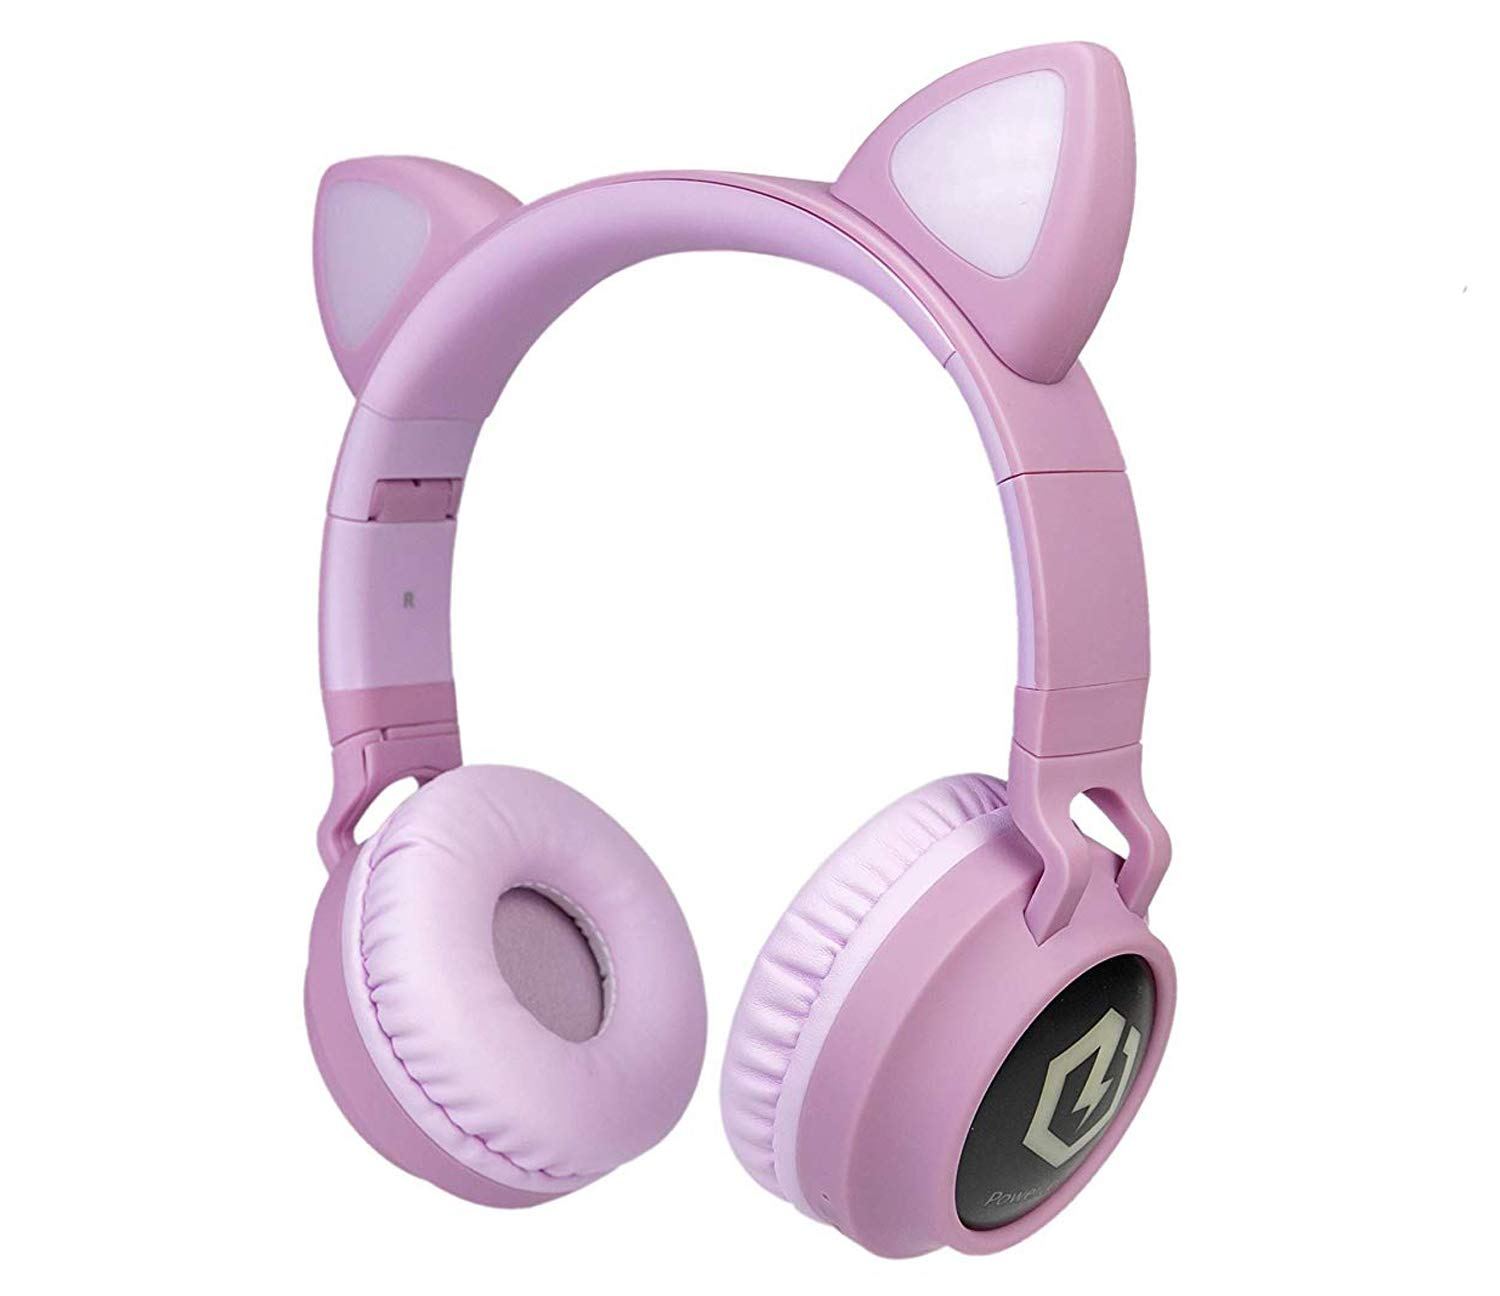 PowerLocus Buddy Wireless Bluetooth Headphones for Kids, Kid Headphone Over-Ear with LED Lights, with 10H Playtime, Wireless and Wired Headphone for Cell Phones,Tablets,PC,Laptop (Pink)